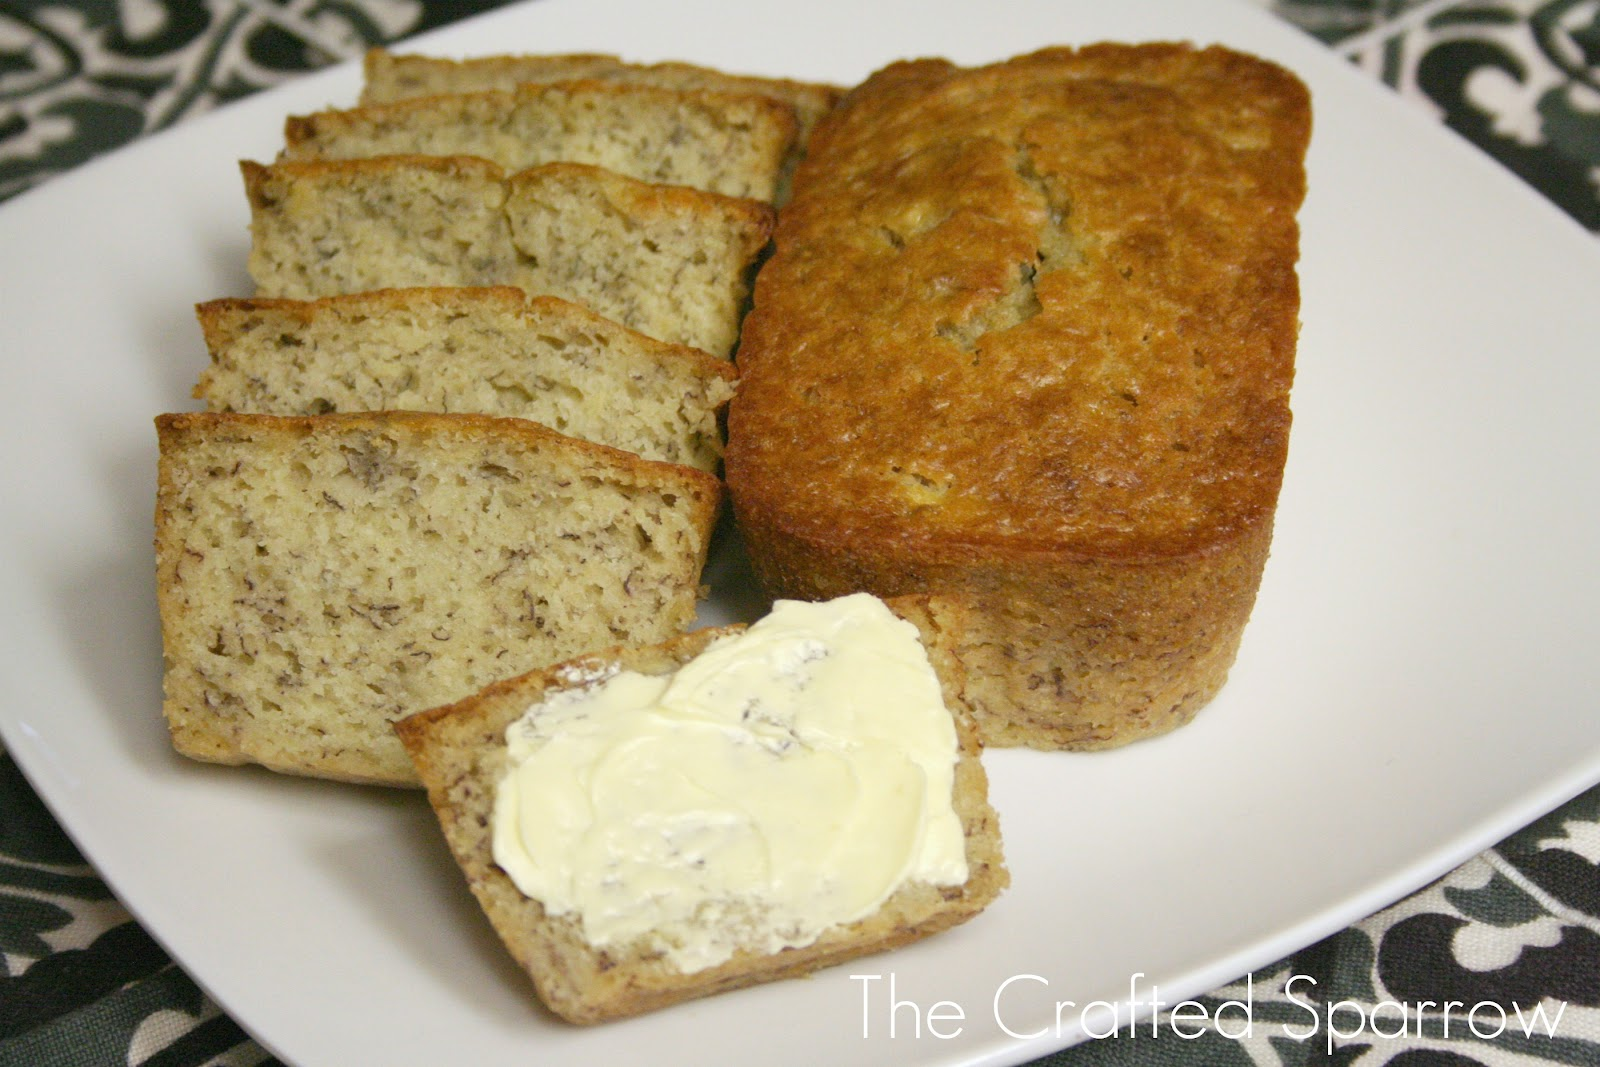 Buttermilk Banana Bread The Crafted Sparrow